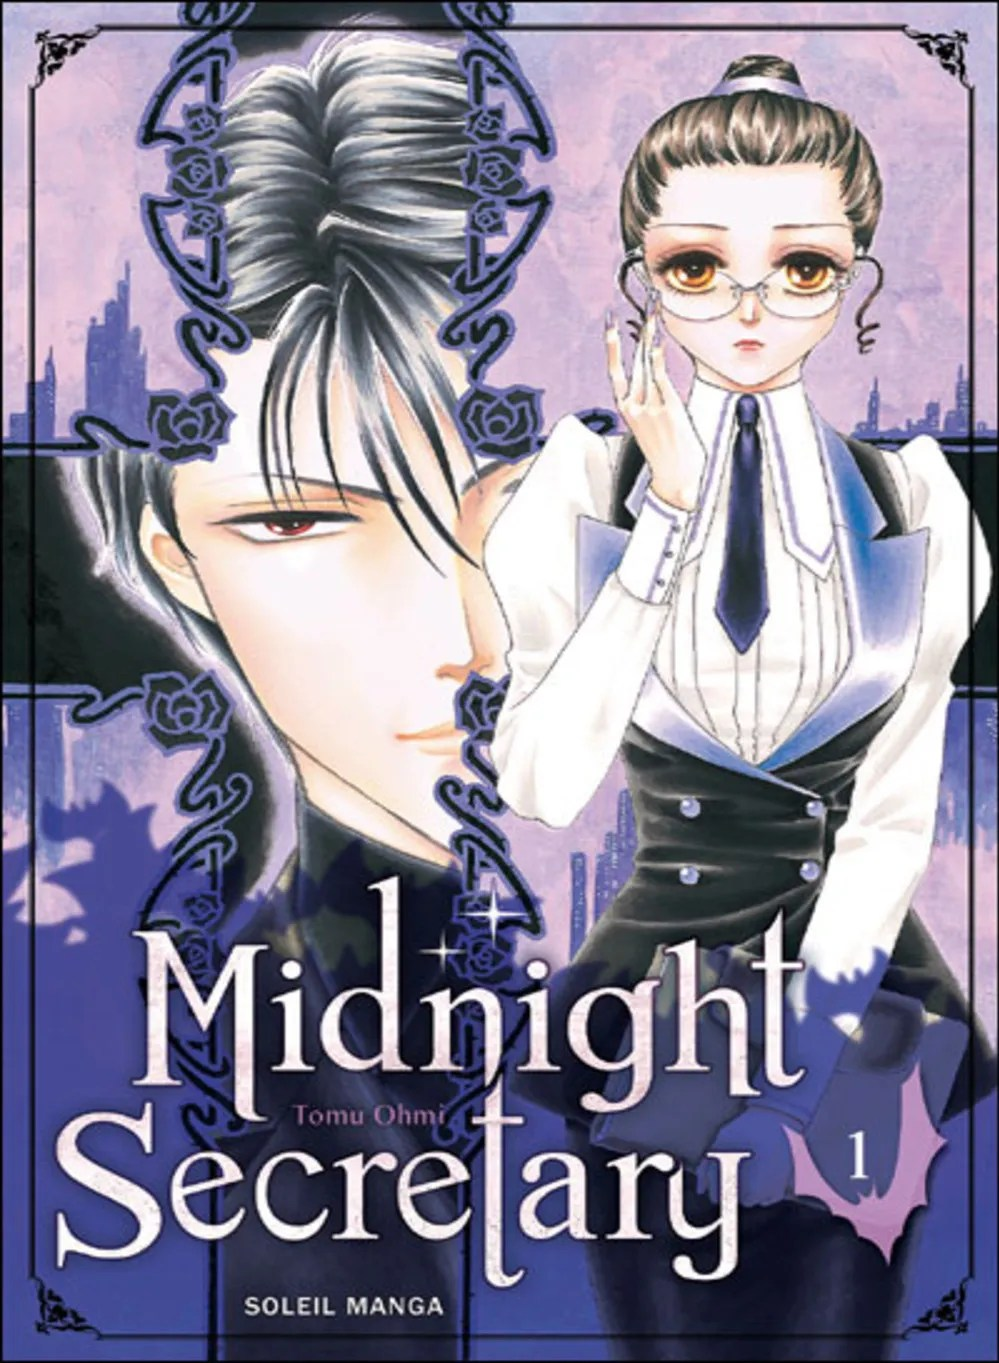 Image result for midnight secretary manga